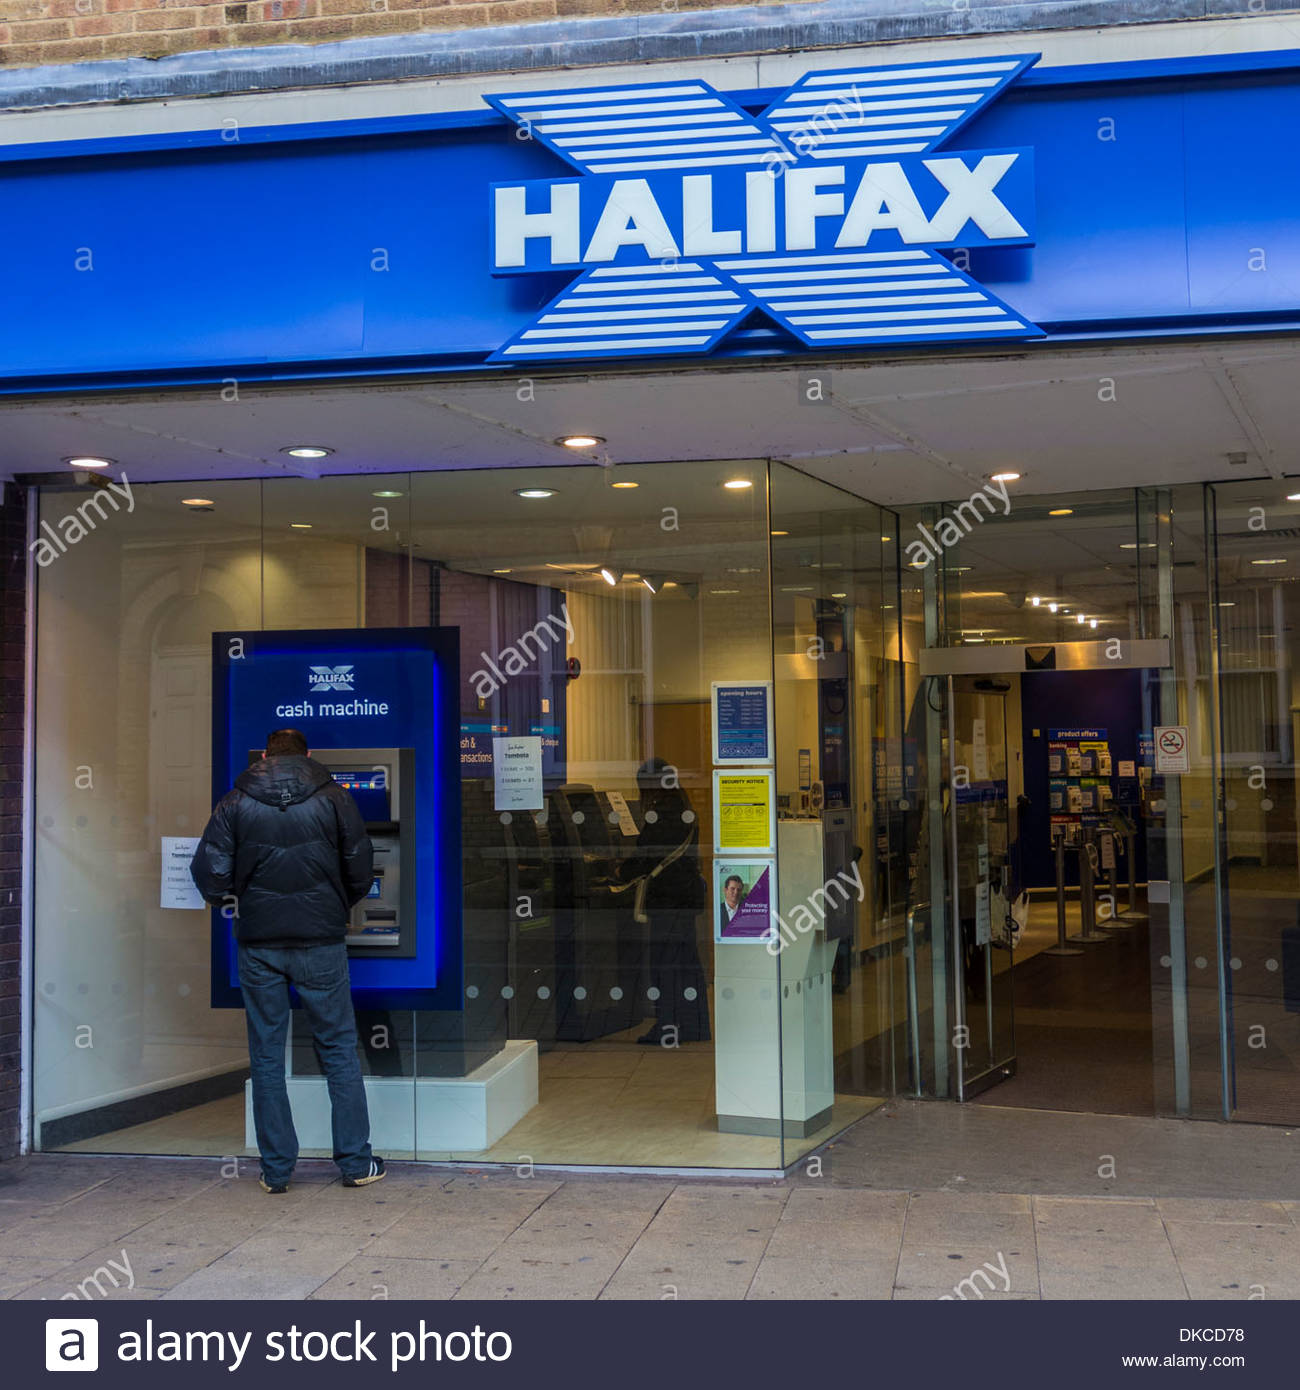 A customer uses a cash machine outside a branch of the Halifax bank, now part of Lloyds Bank Stock Photo